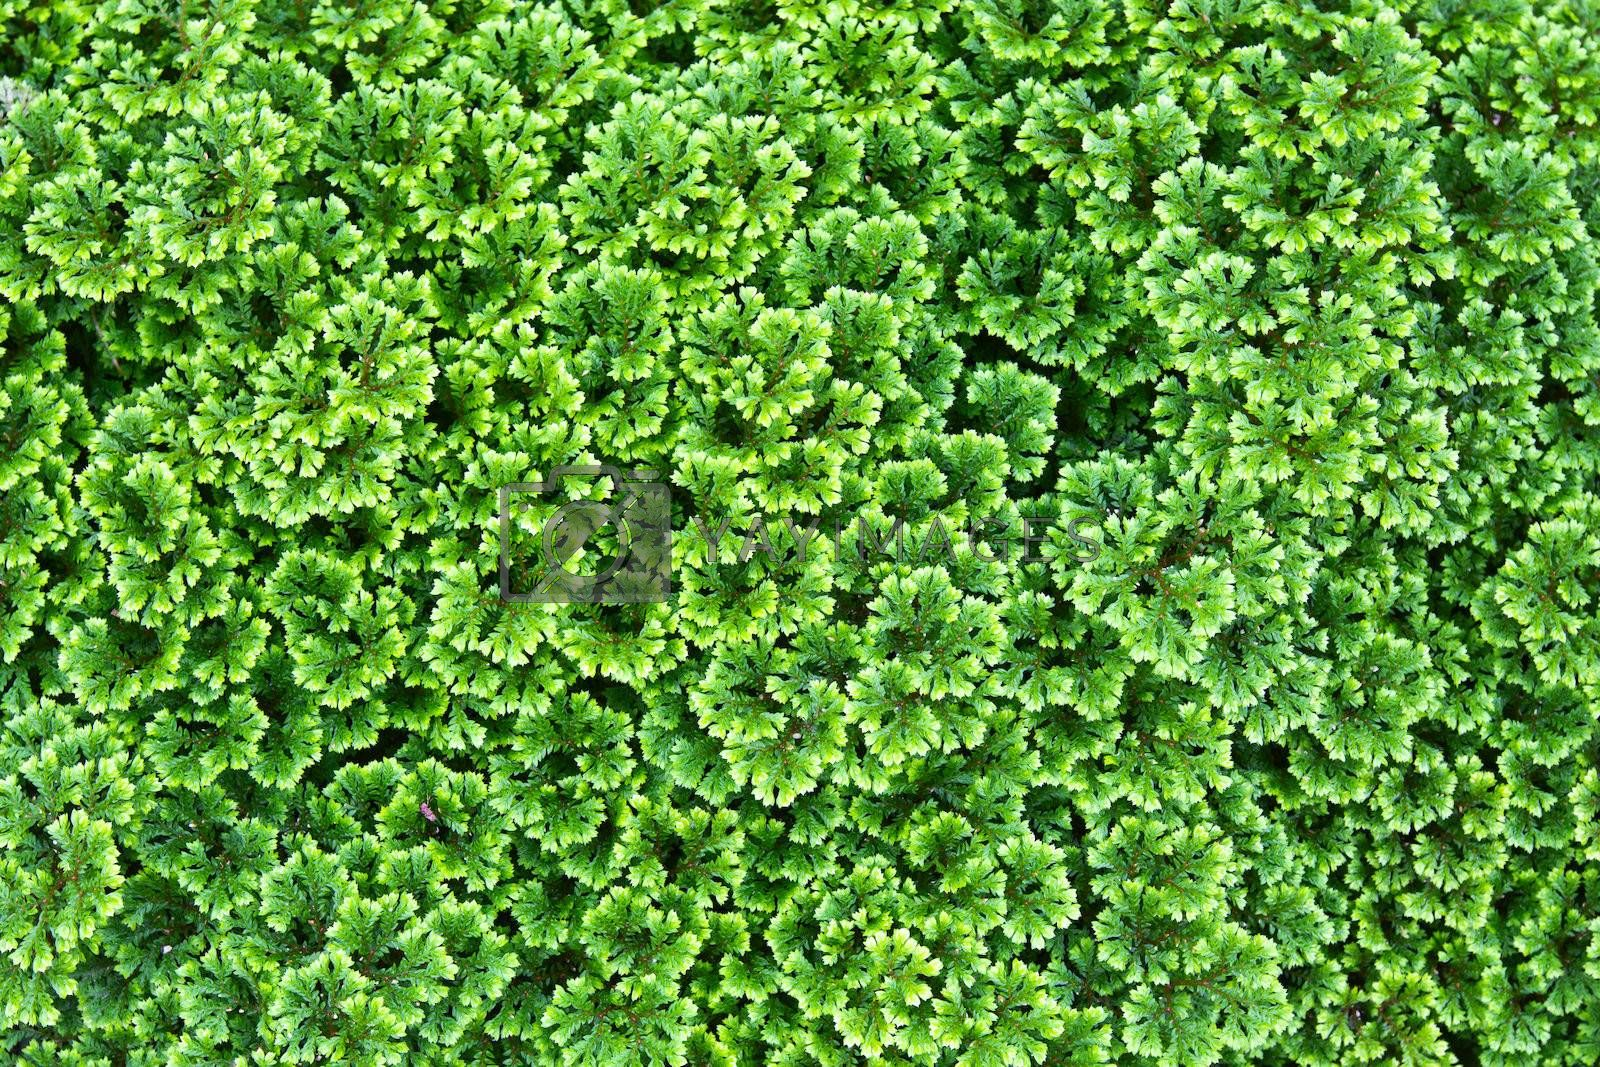 Green background of the ground cover plants